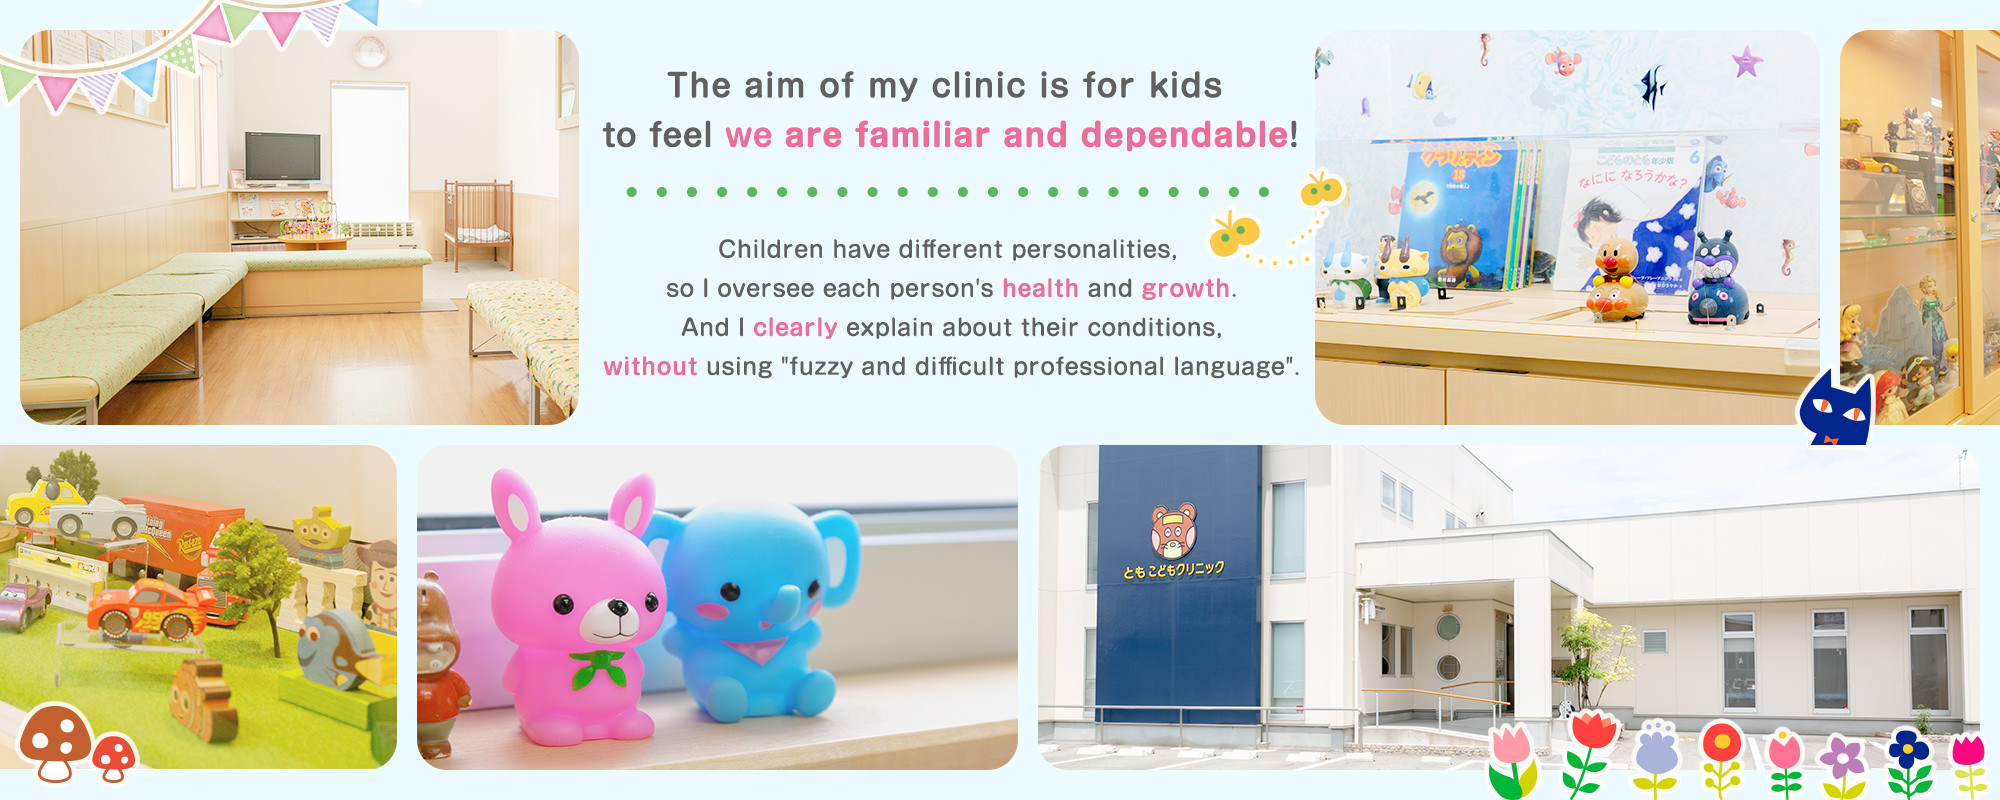 The aim of my clinic is for kids to be familiar, dependable! Children has different personality, so I see each person's